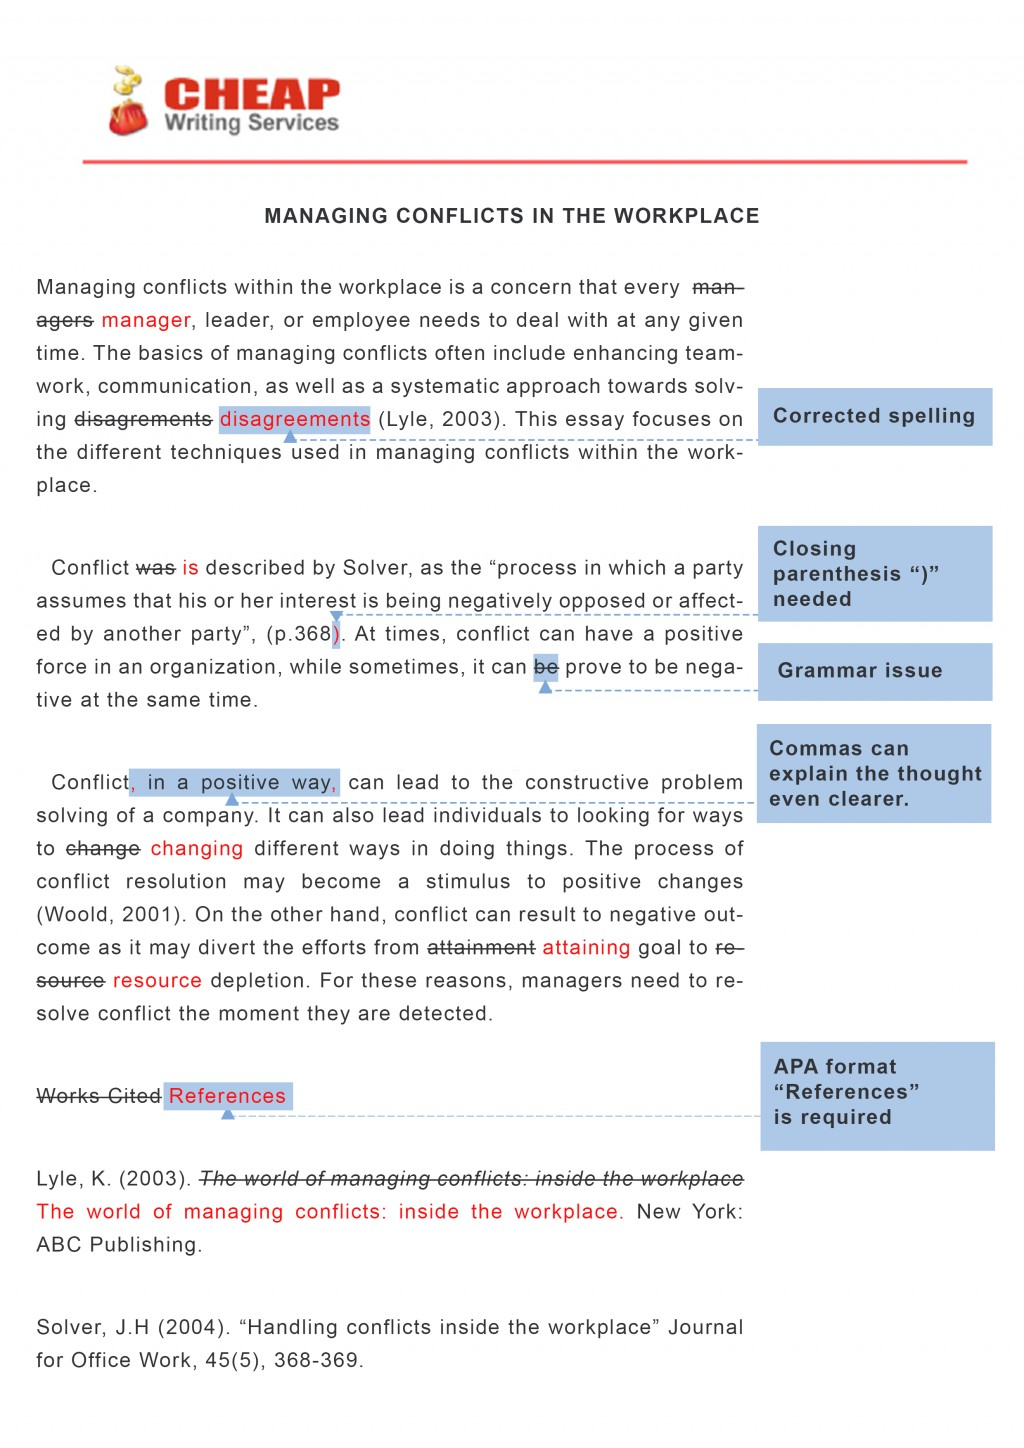 003 Essay Example Editing Cheap Top Writing Service Reviews 2017 Canada Large